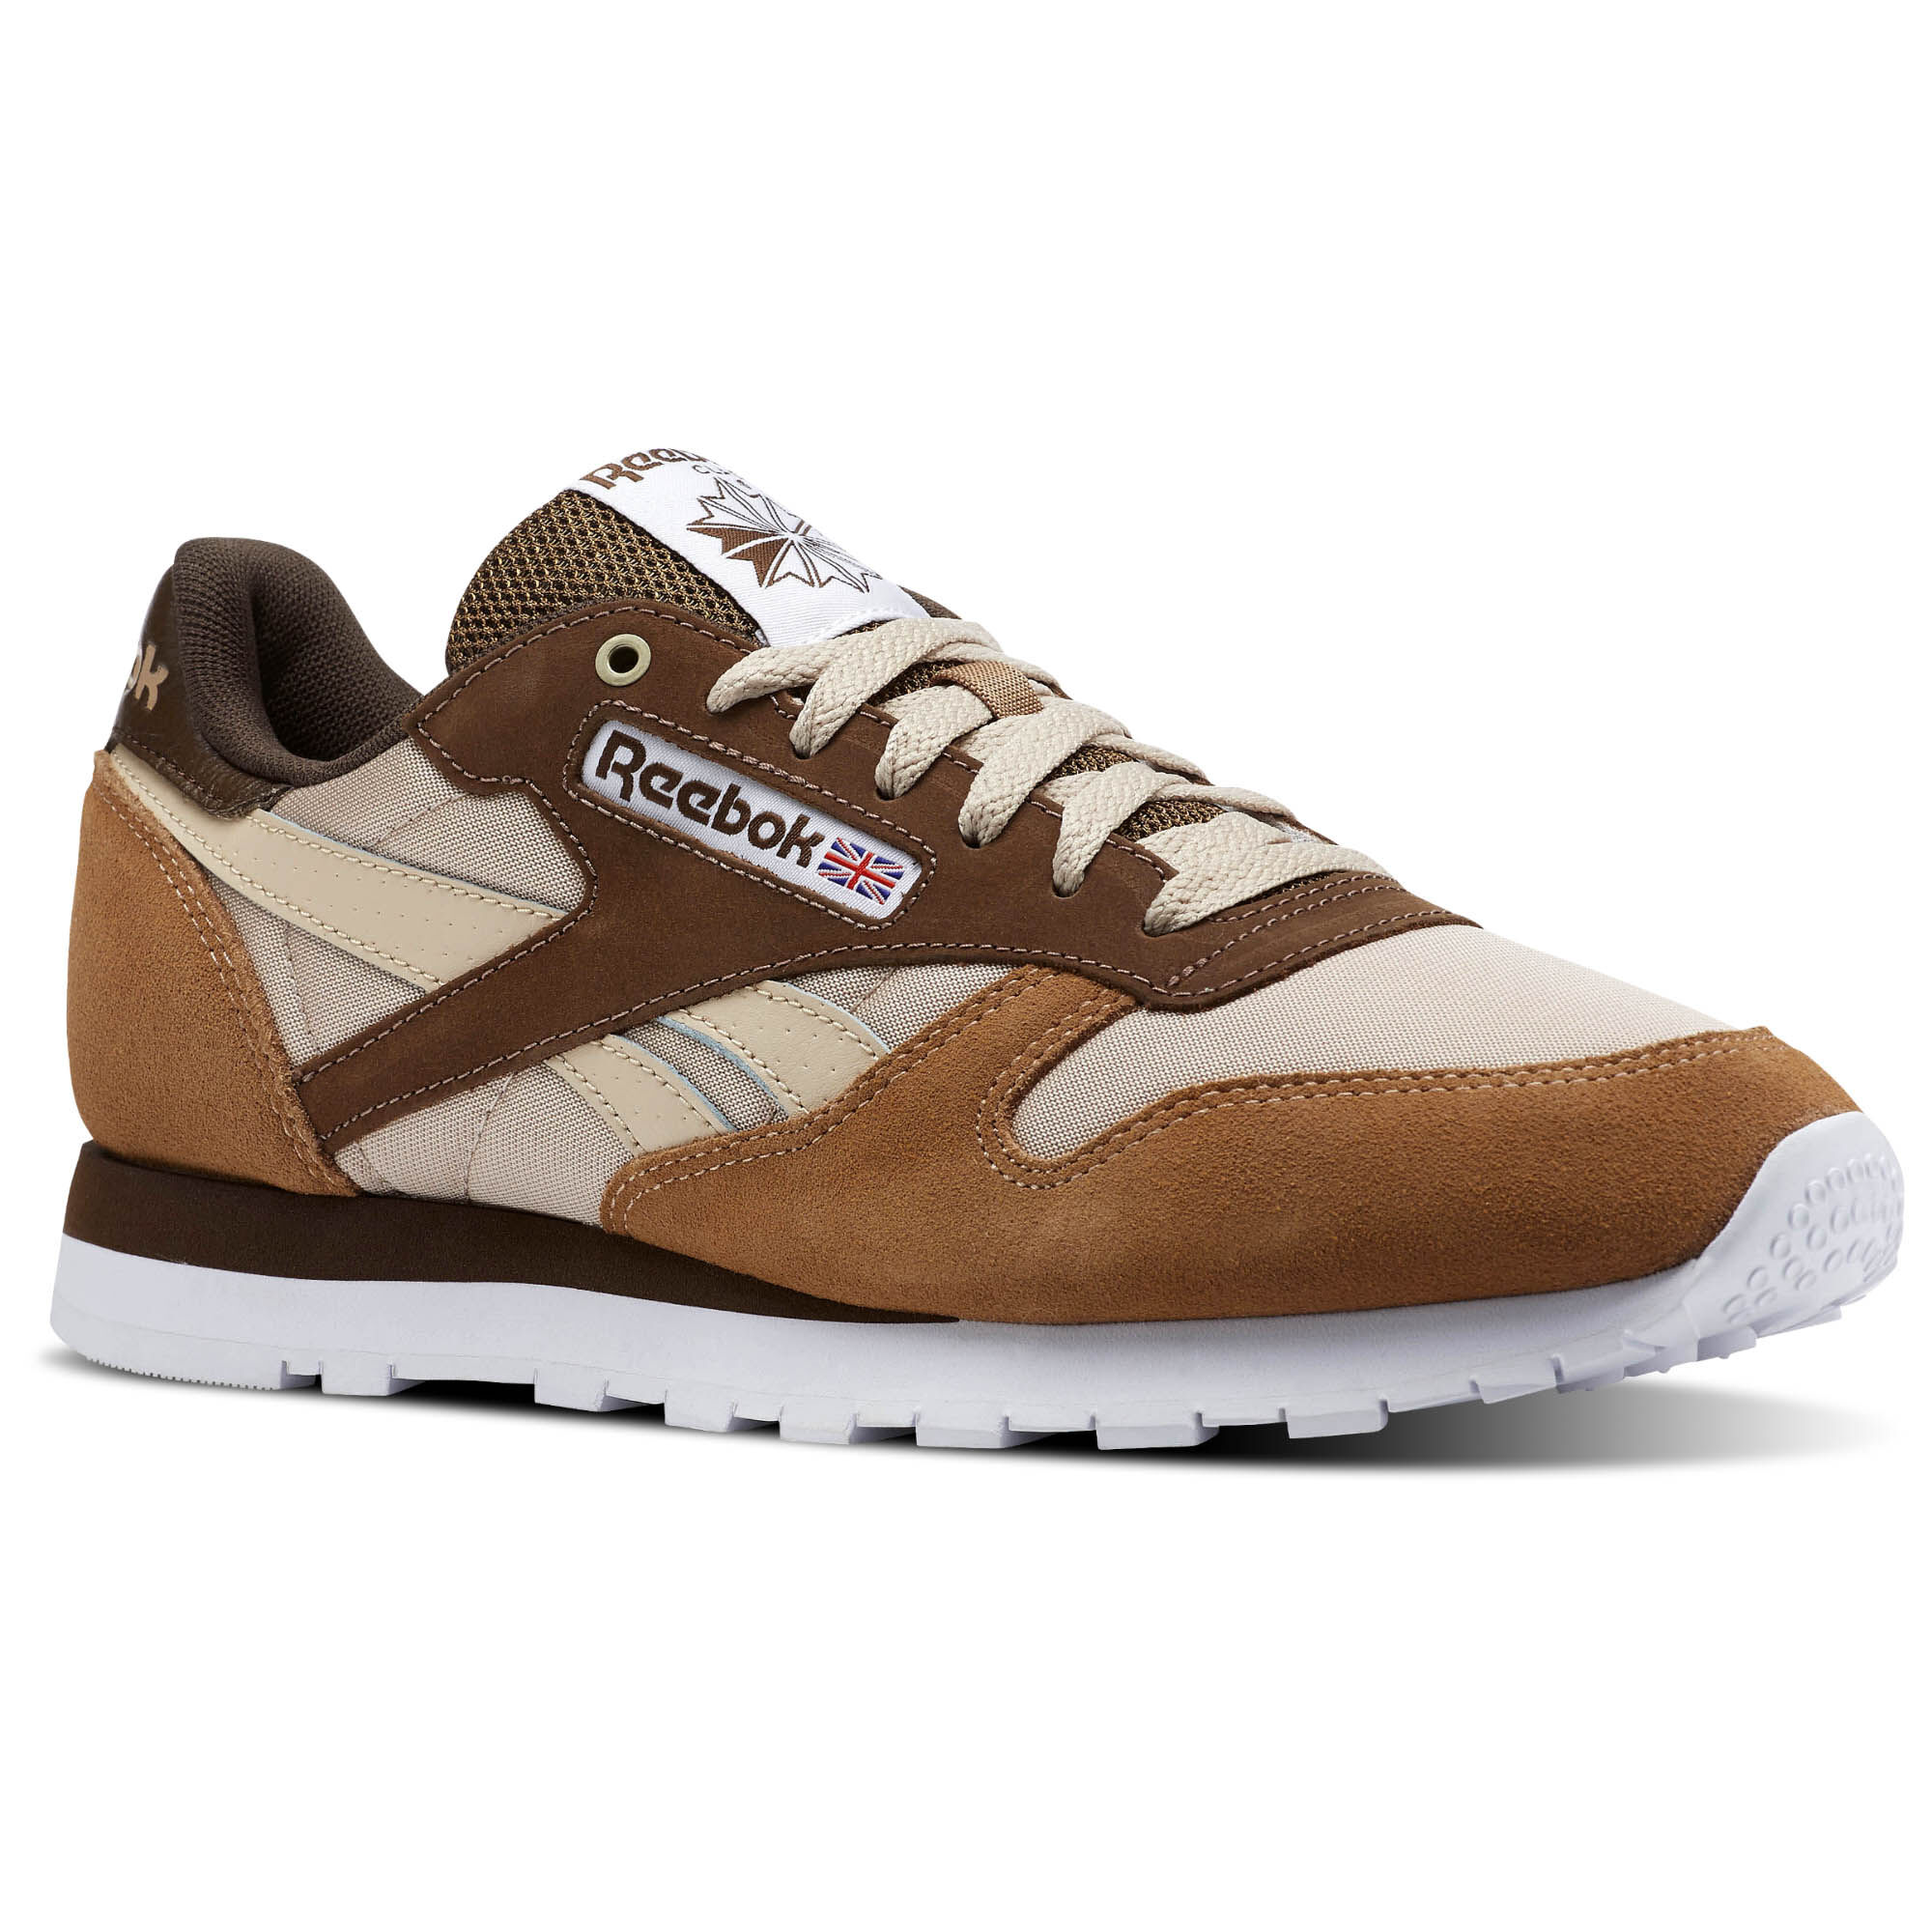 Reebok Classic Leather Weave - 42.5 f3UoPg